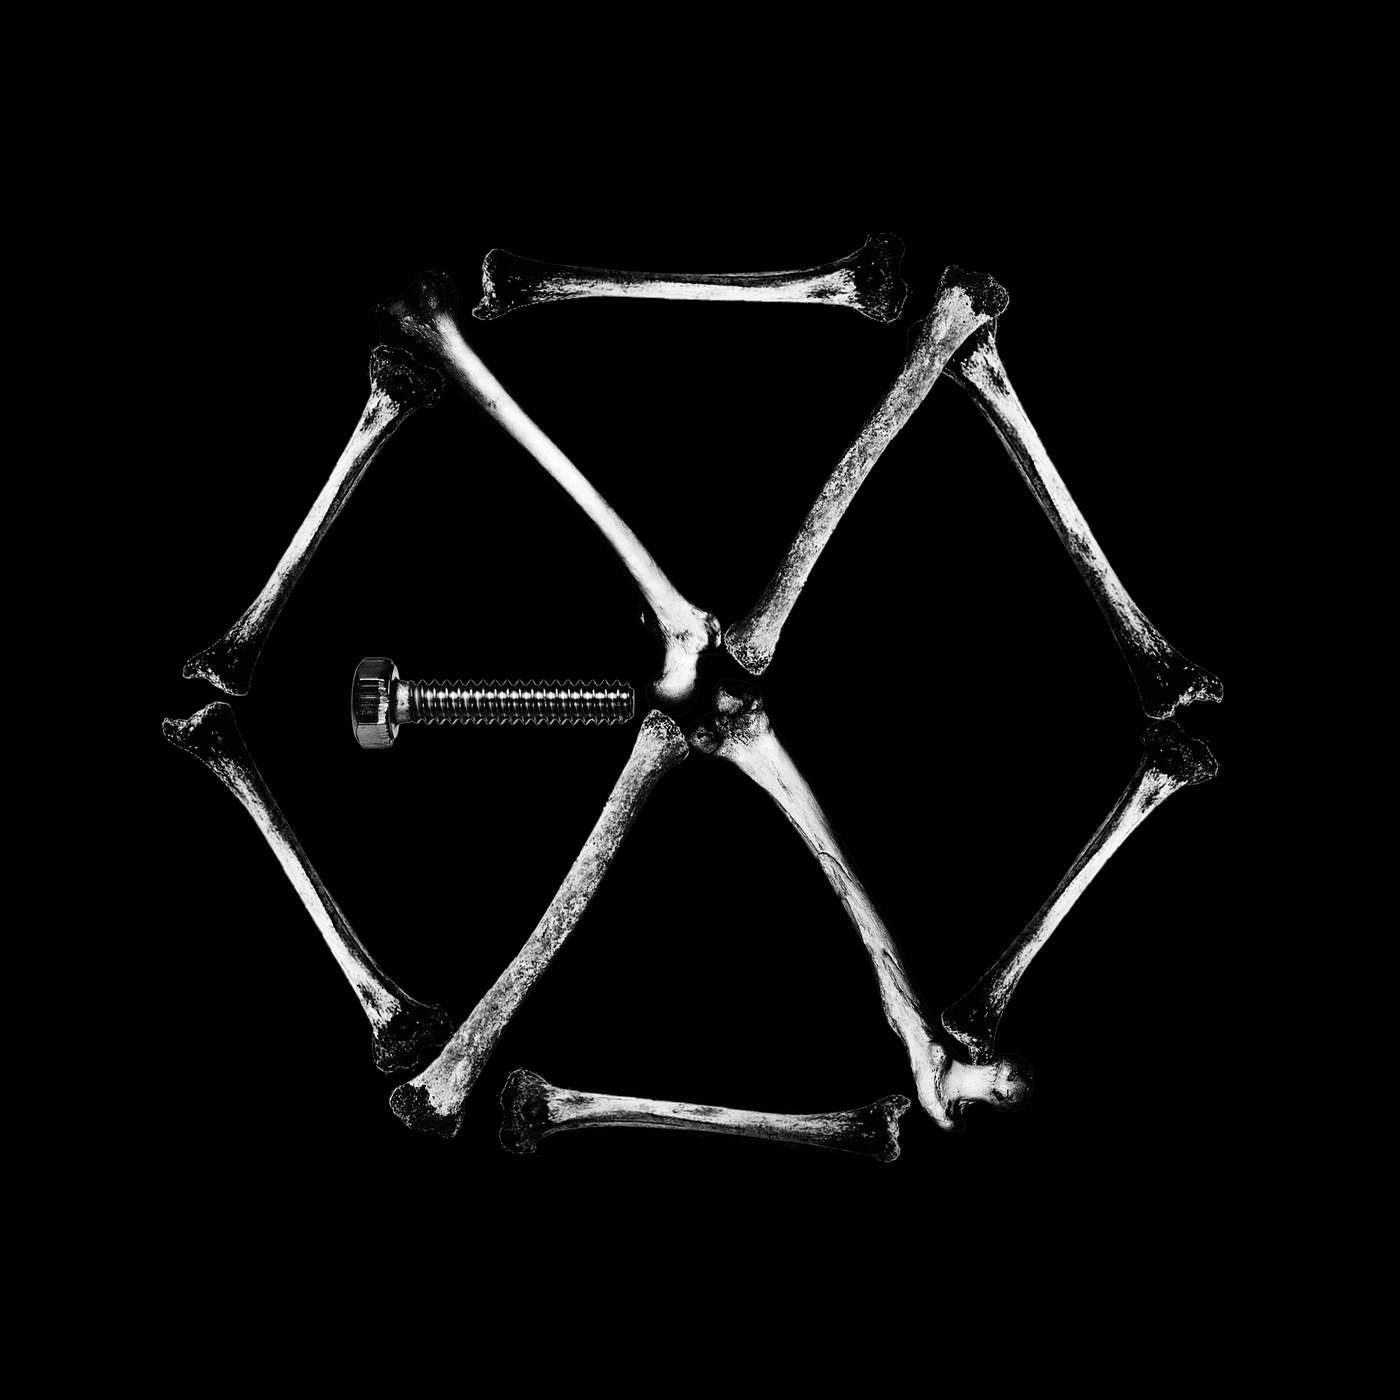 Monster (LDN Noise Creeper Bass Remix) | Kpop Wiki | FANDOM